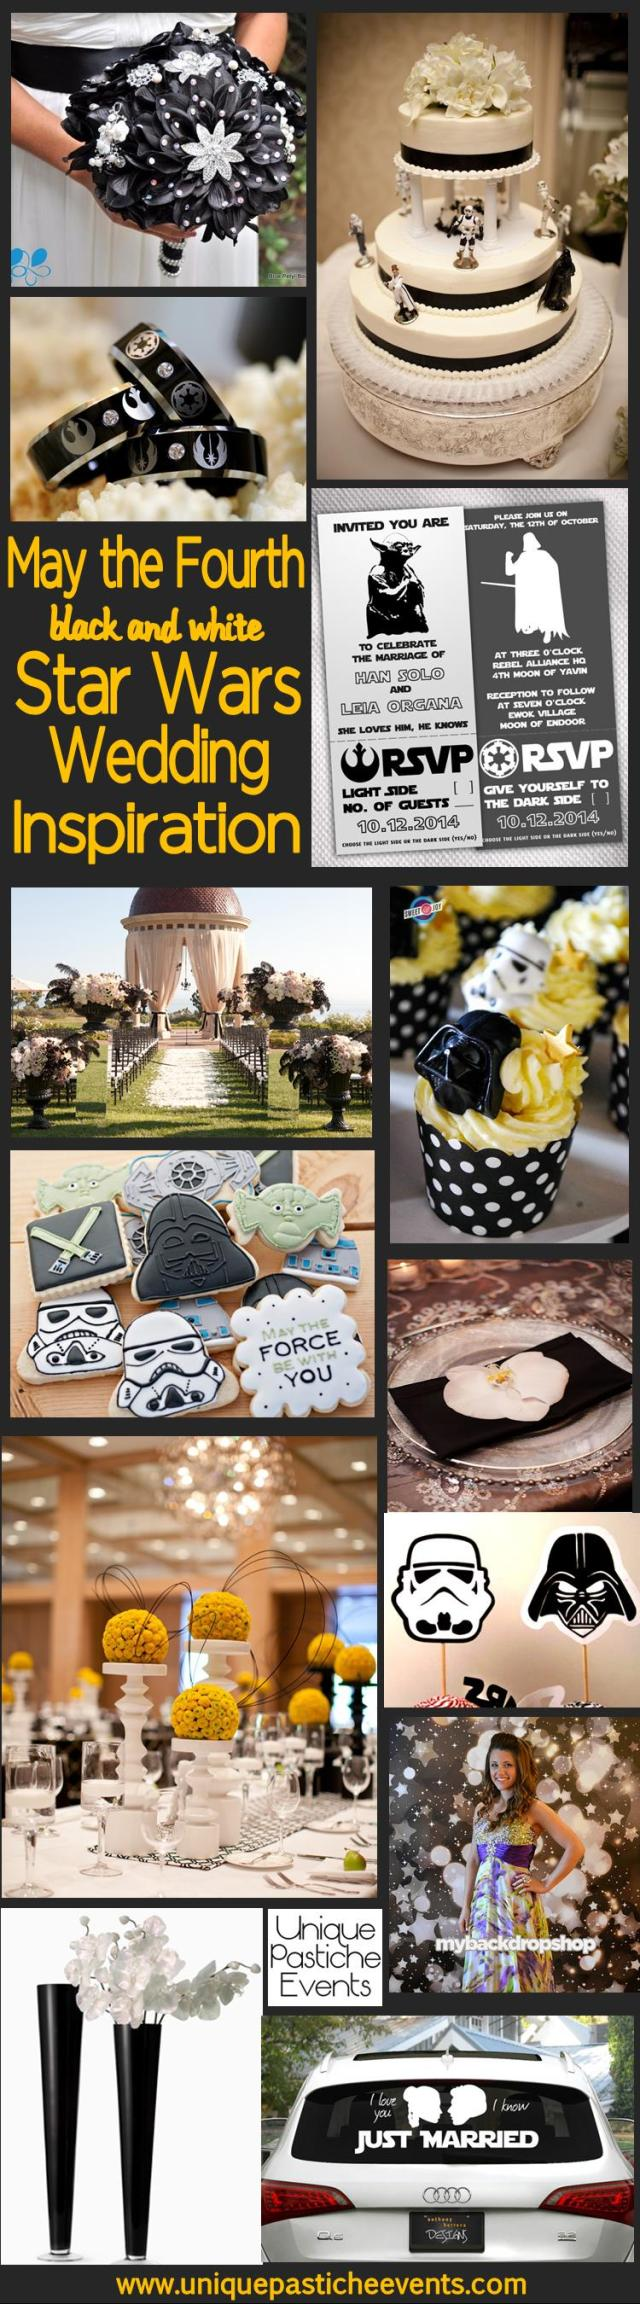 May the Fourth {Black and White} Star Wars Wedding - Inspiration and Ideas